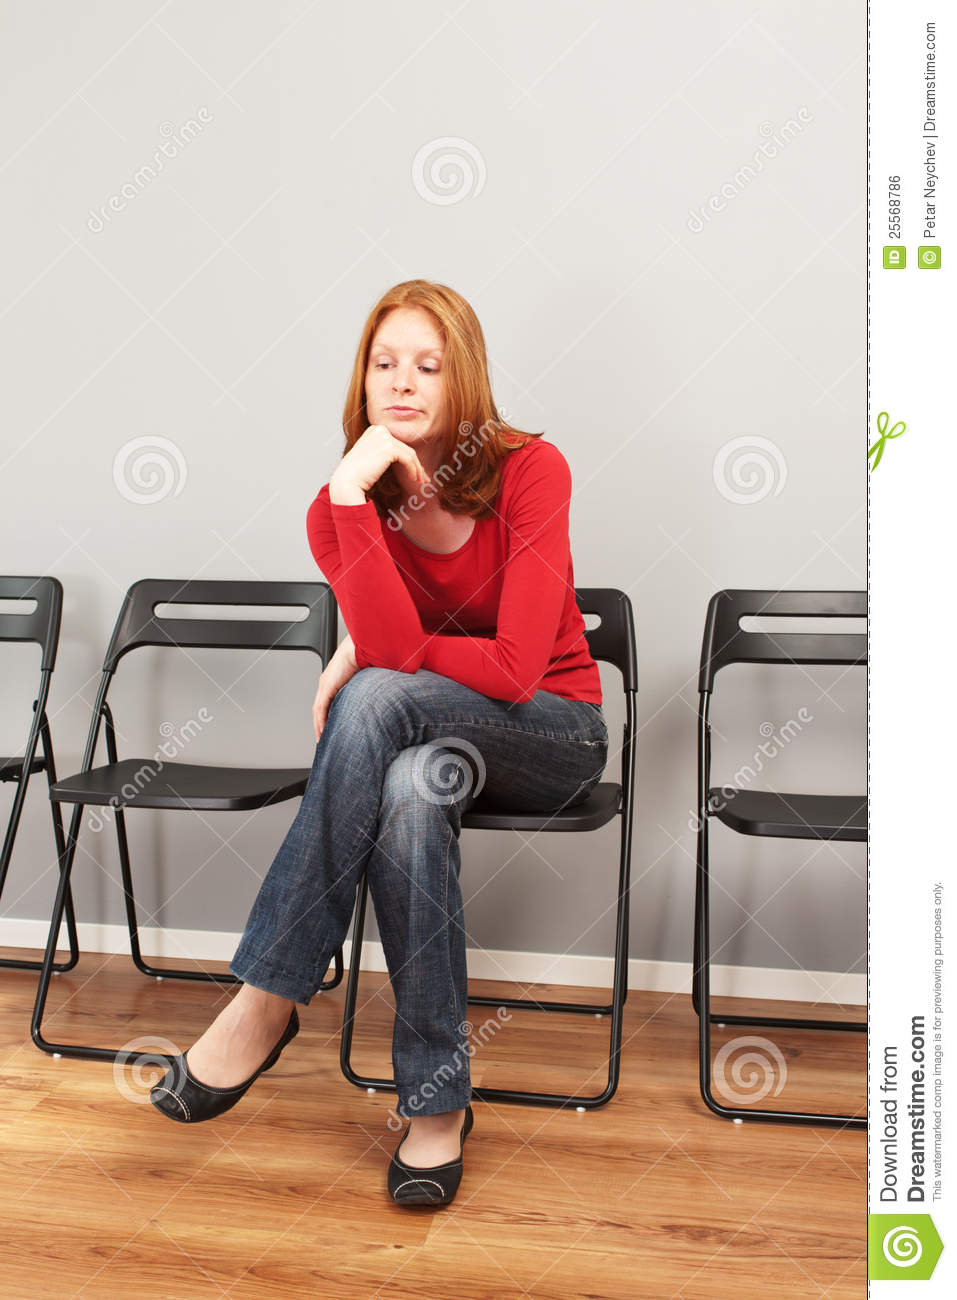 Person In A Waiting Room Royalty Free Stock Image Image